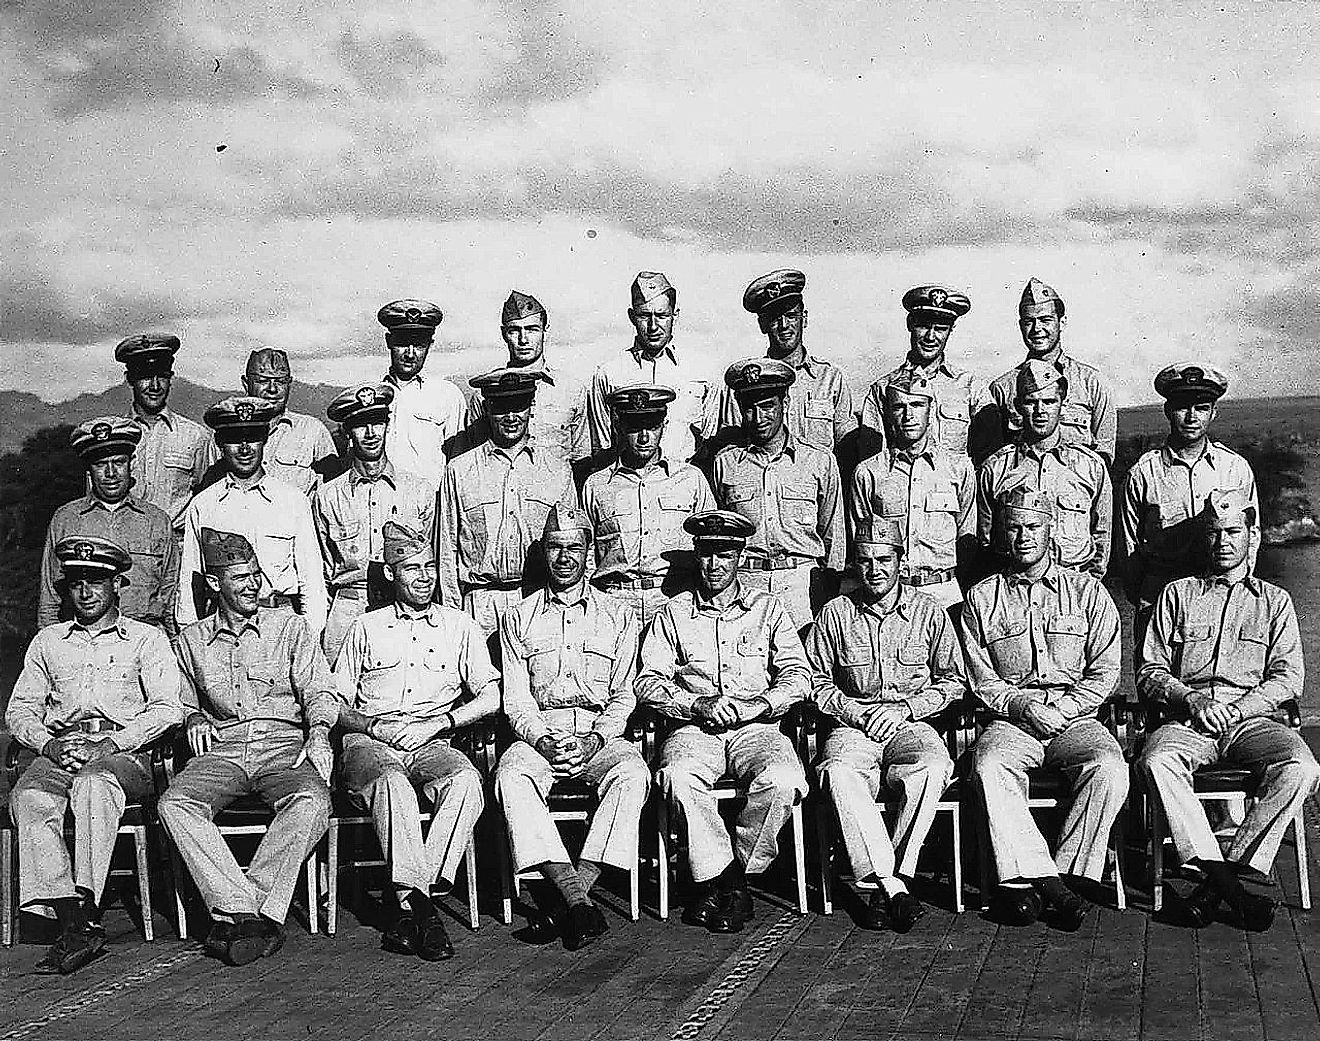 The Gunnery officers of USS Monterey. Ford is second from the right, in the front row. Image credit: US Navy / Public domain